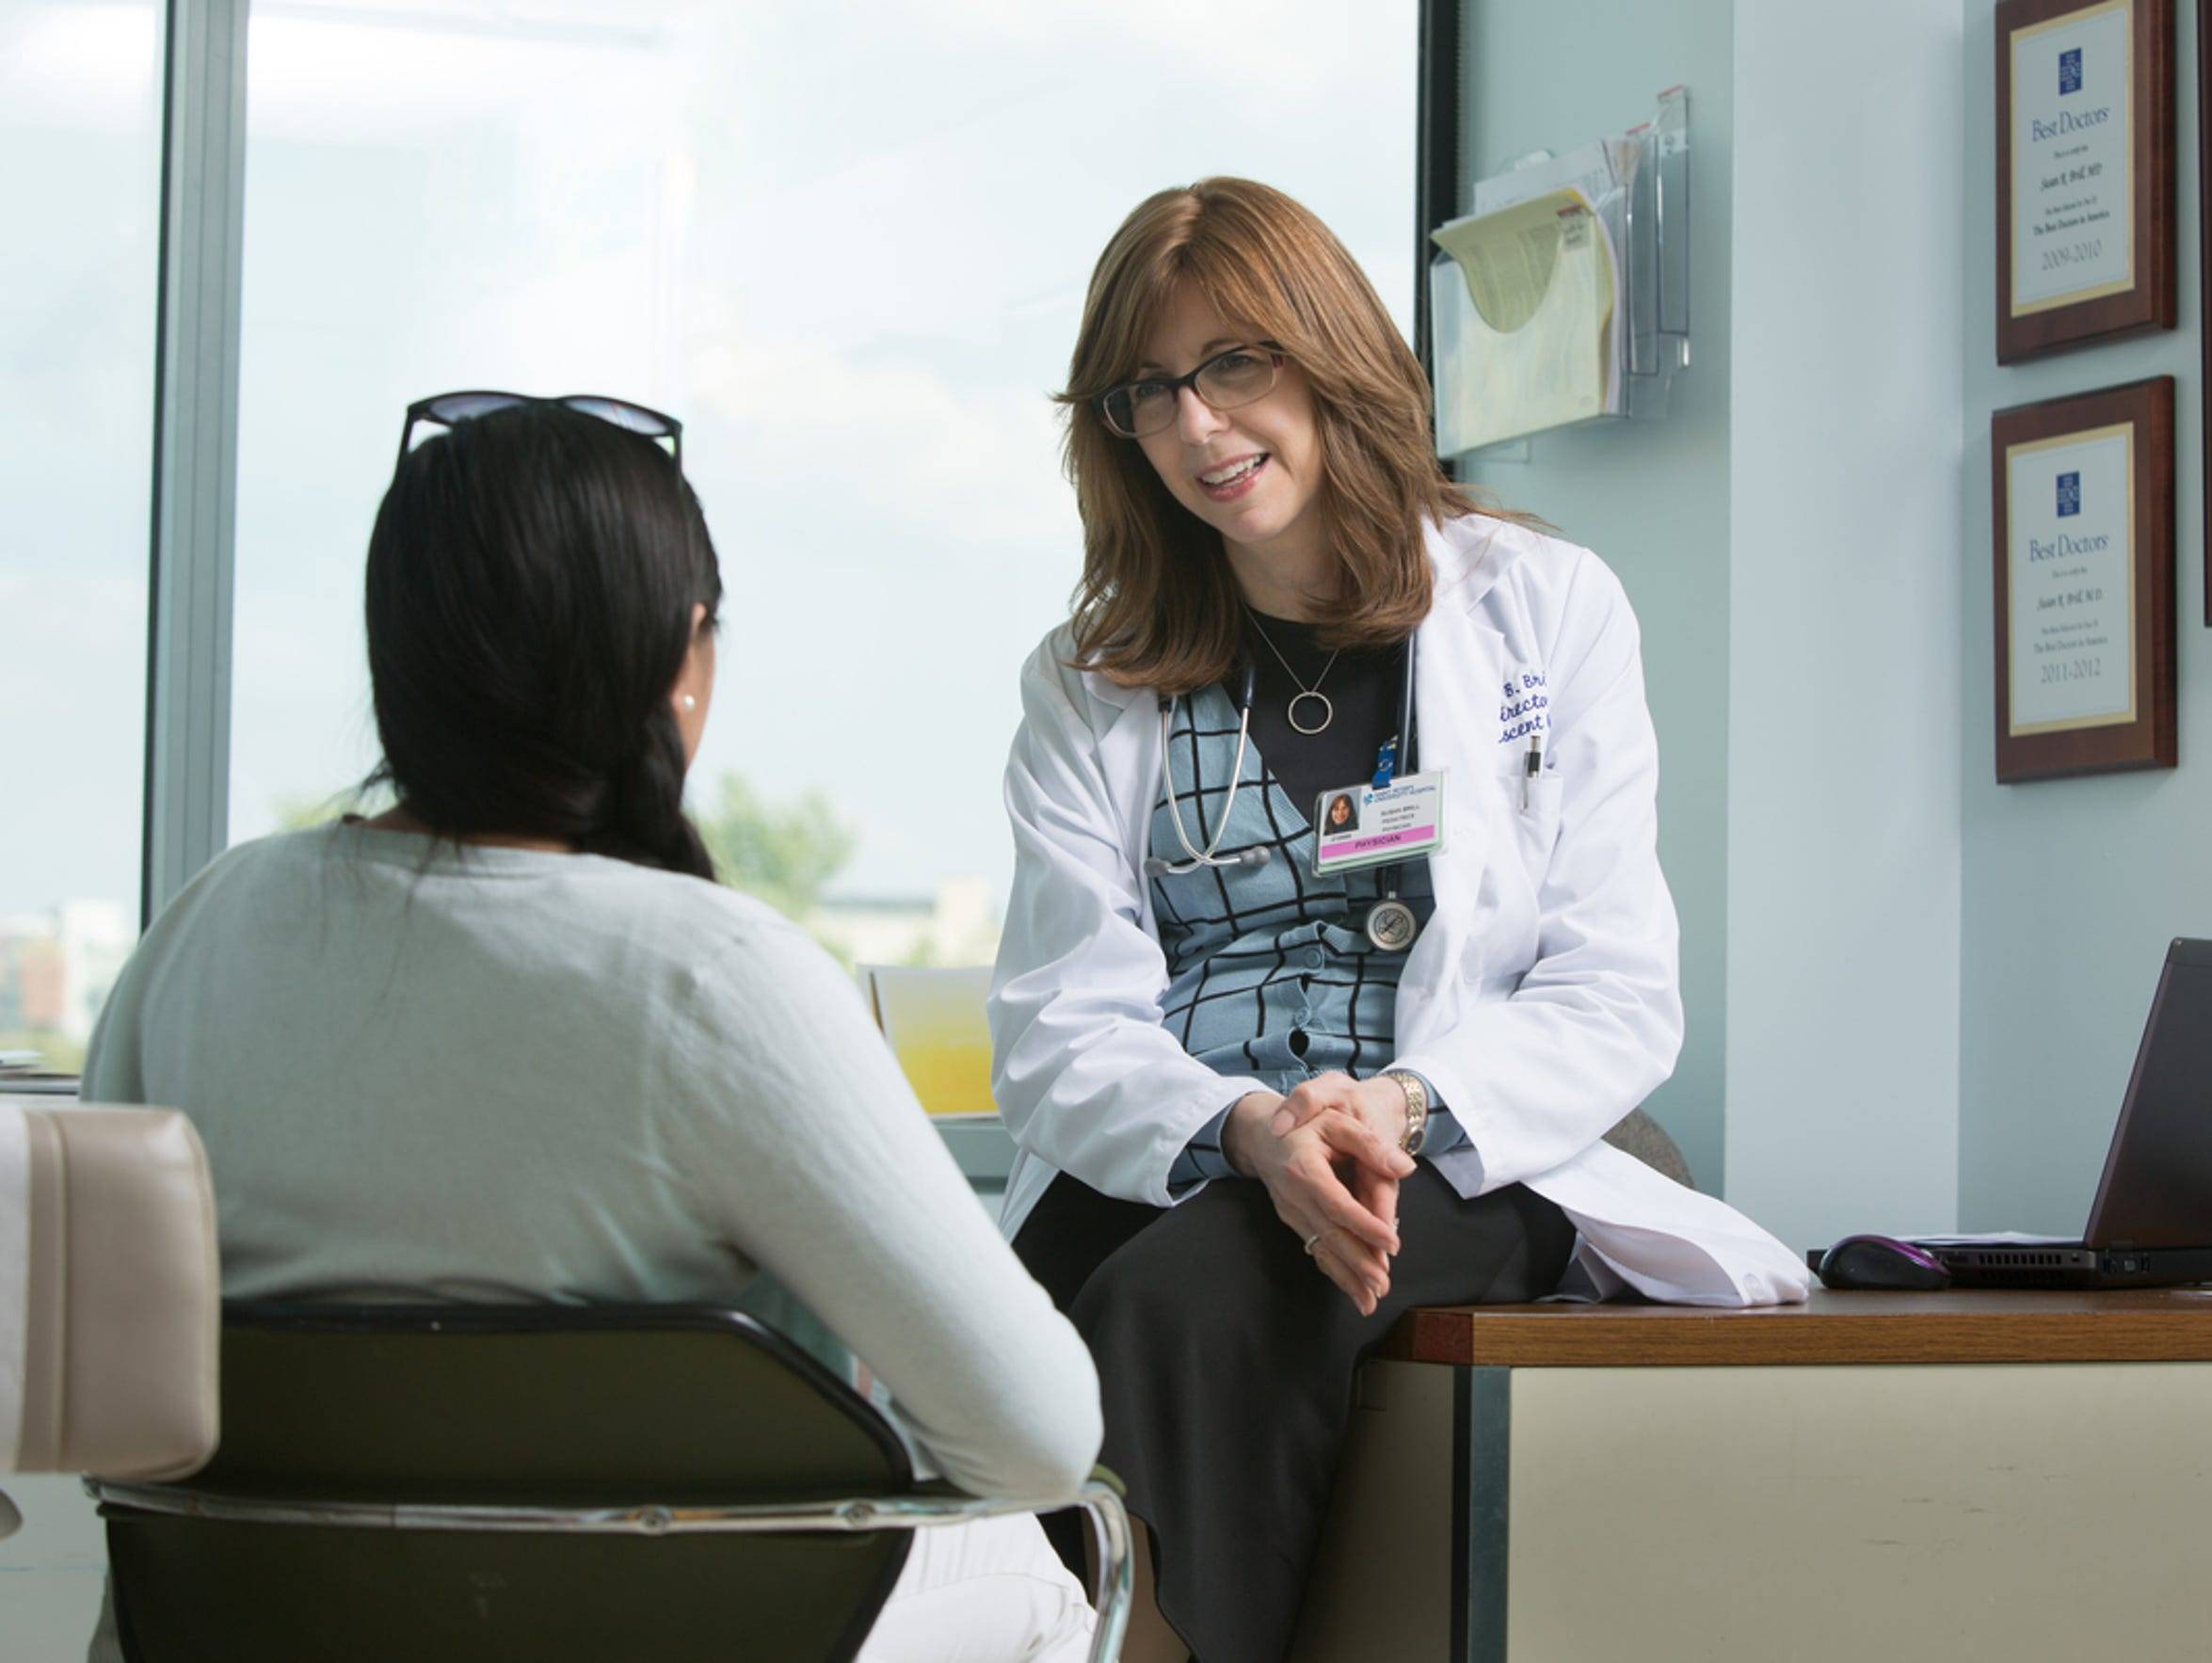 Dr. Susan Brill talks with a young patient.